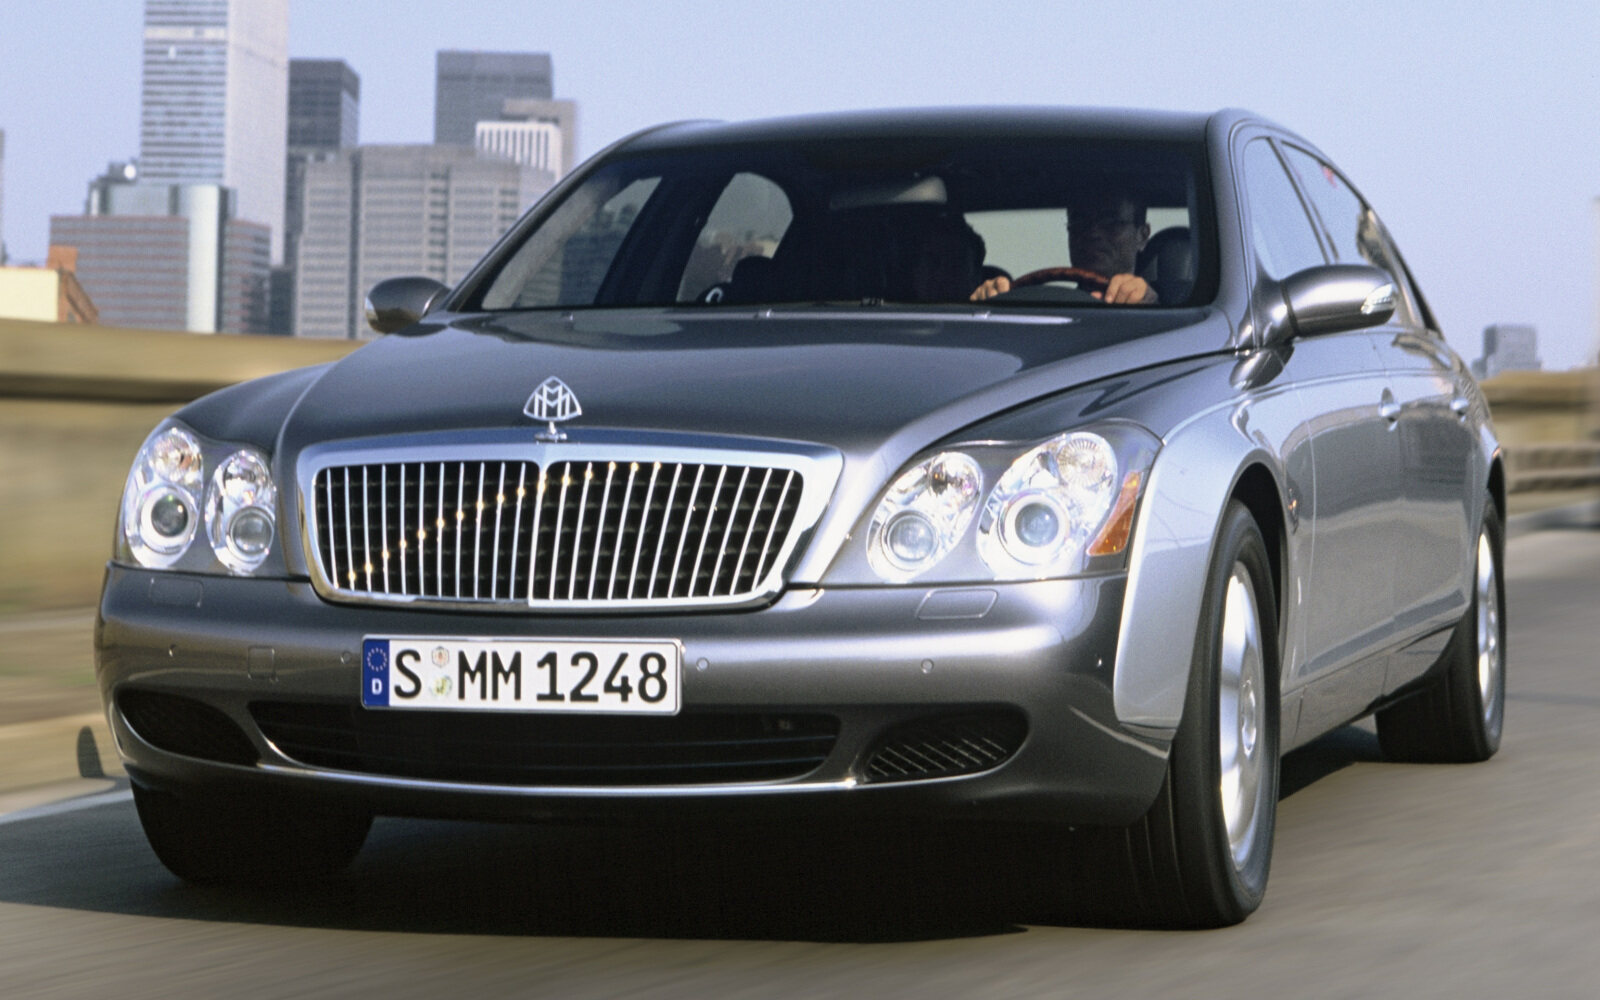 PKW4600020 Maybach 62, since 2002